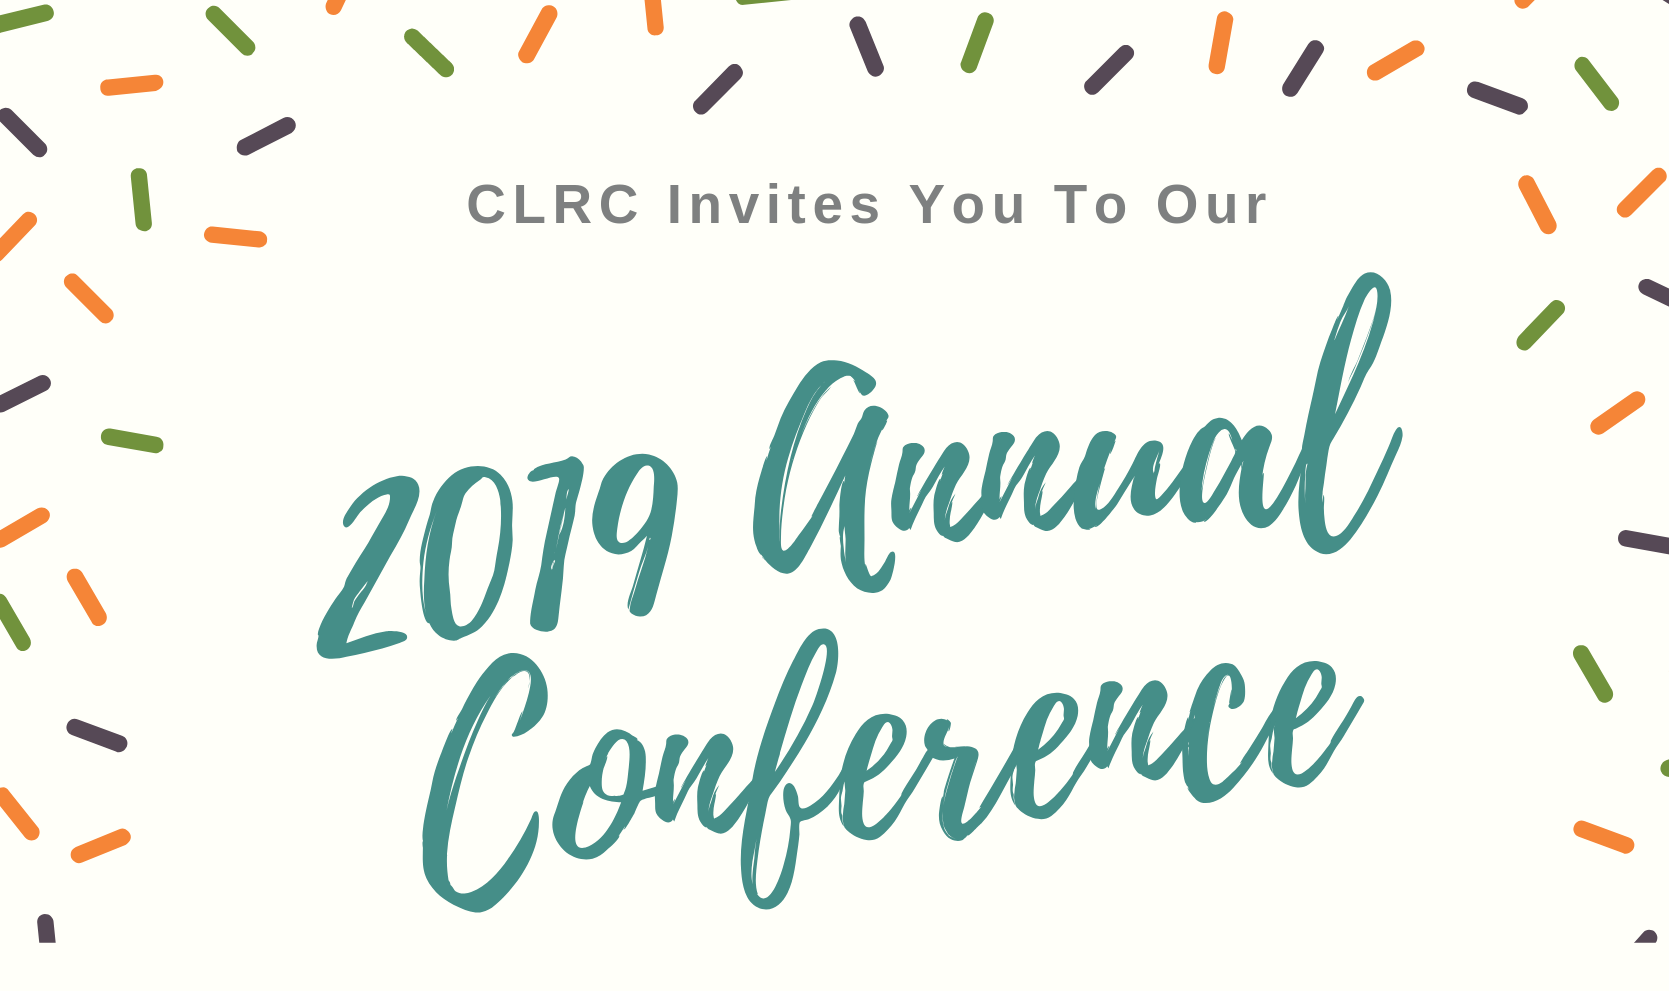 CLRC Invites You to Your 2019 Annual Conference